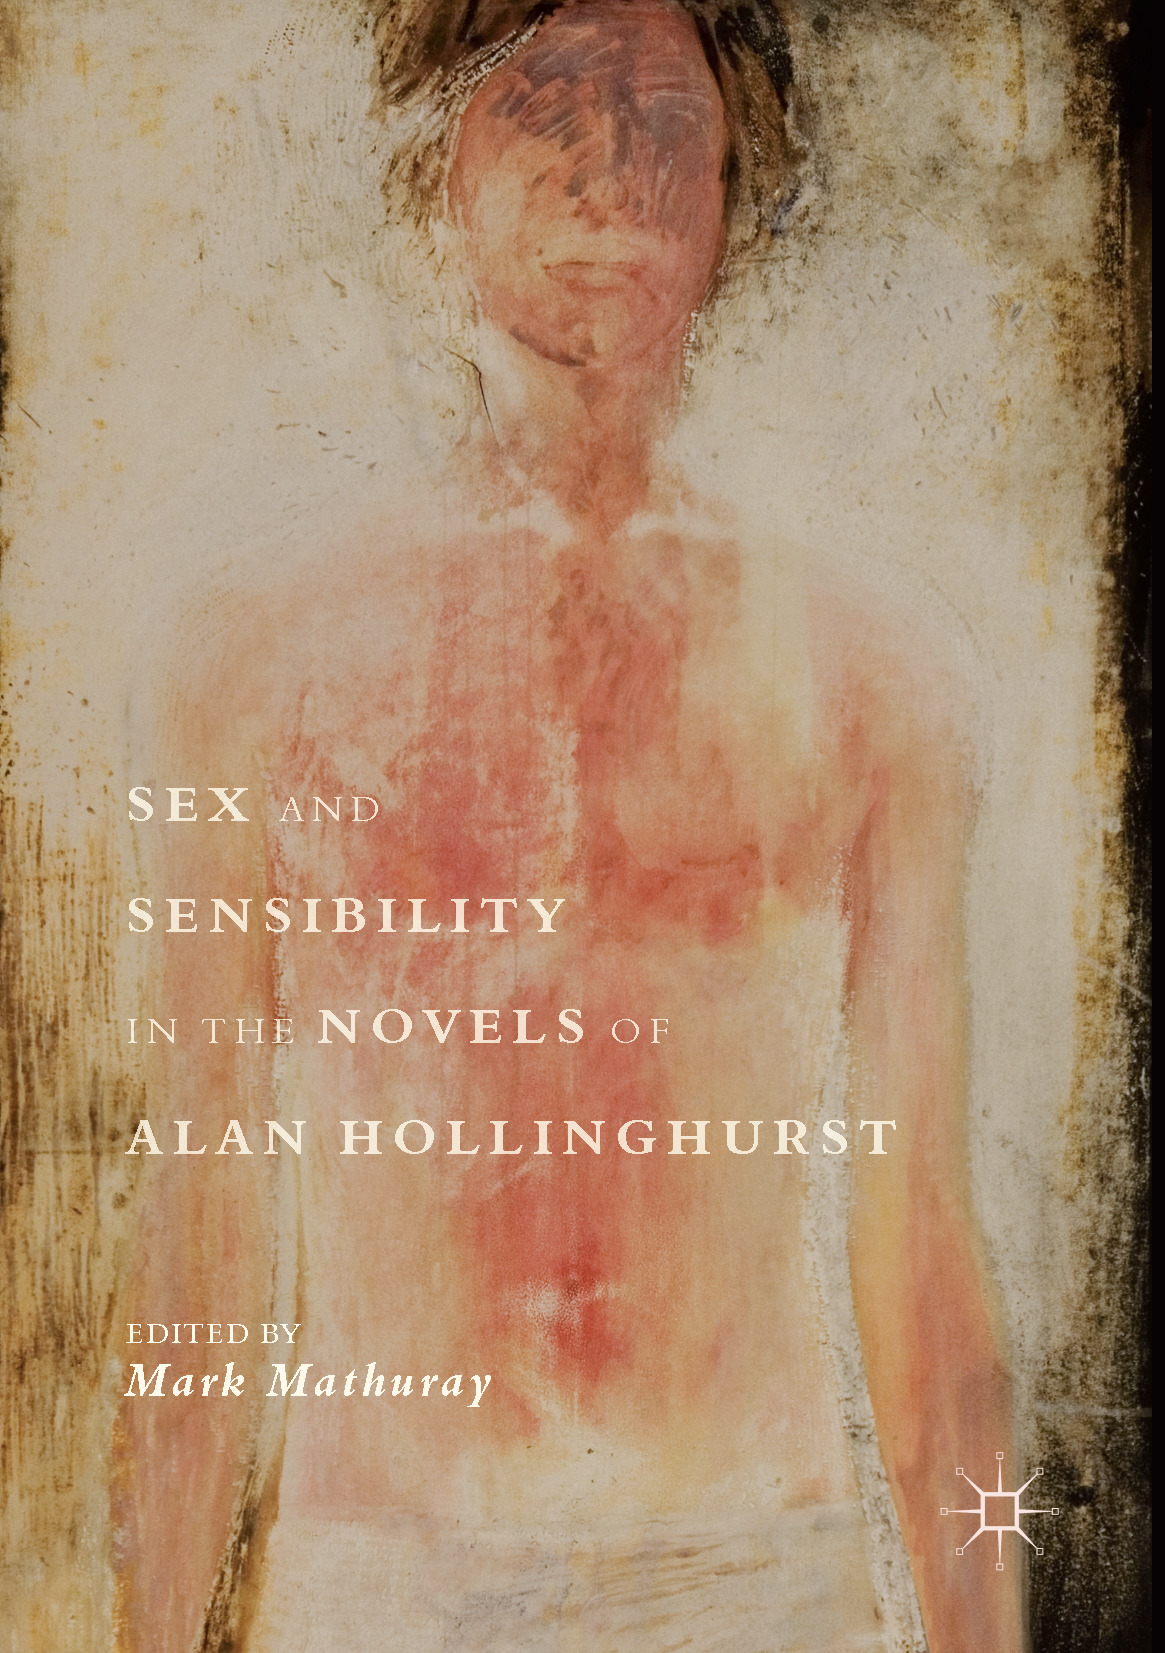 Mathuray, Mark - Sex and Sensibility in the Novels of Alan Hollinghurst, ebook